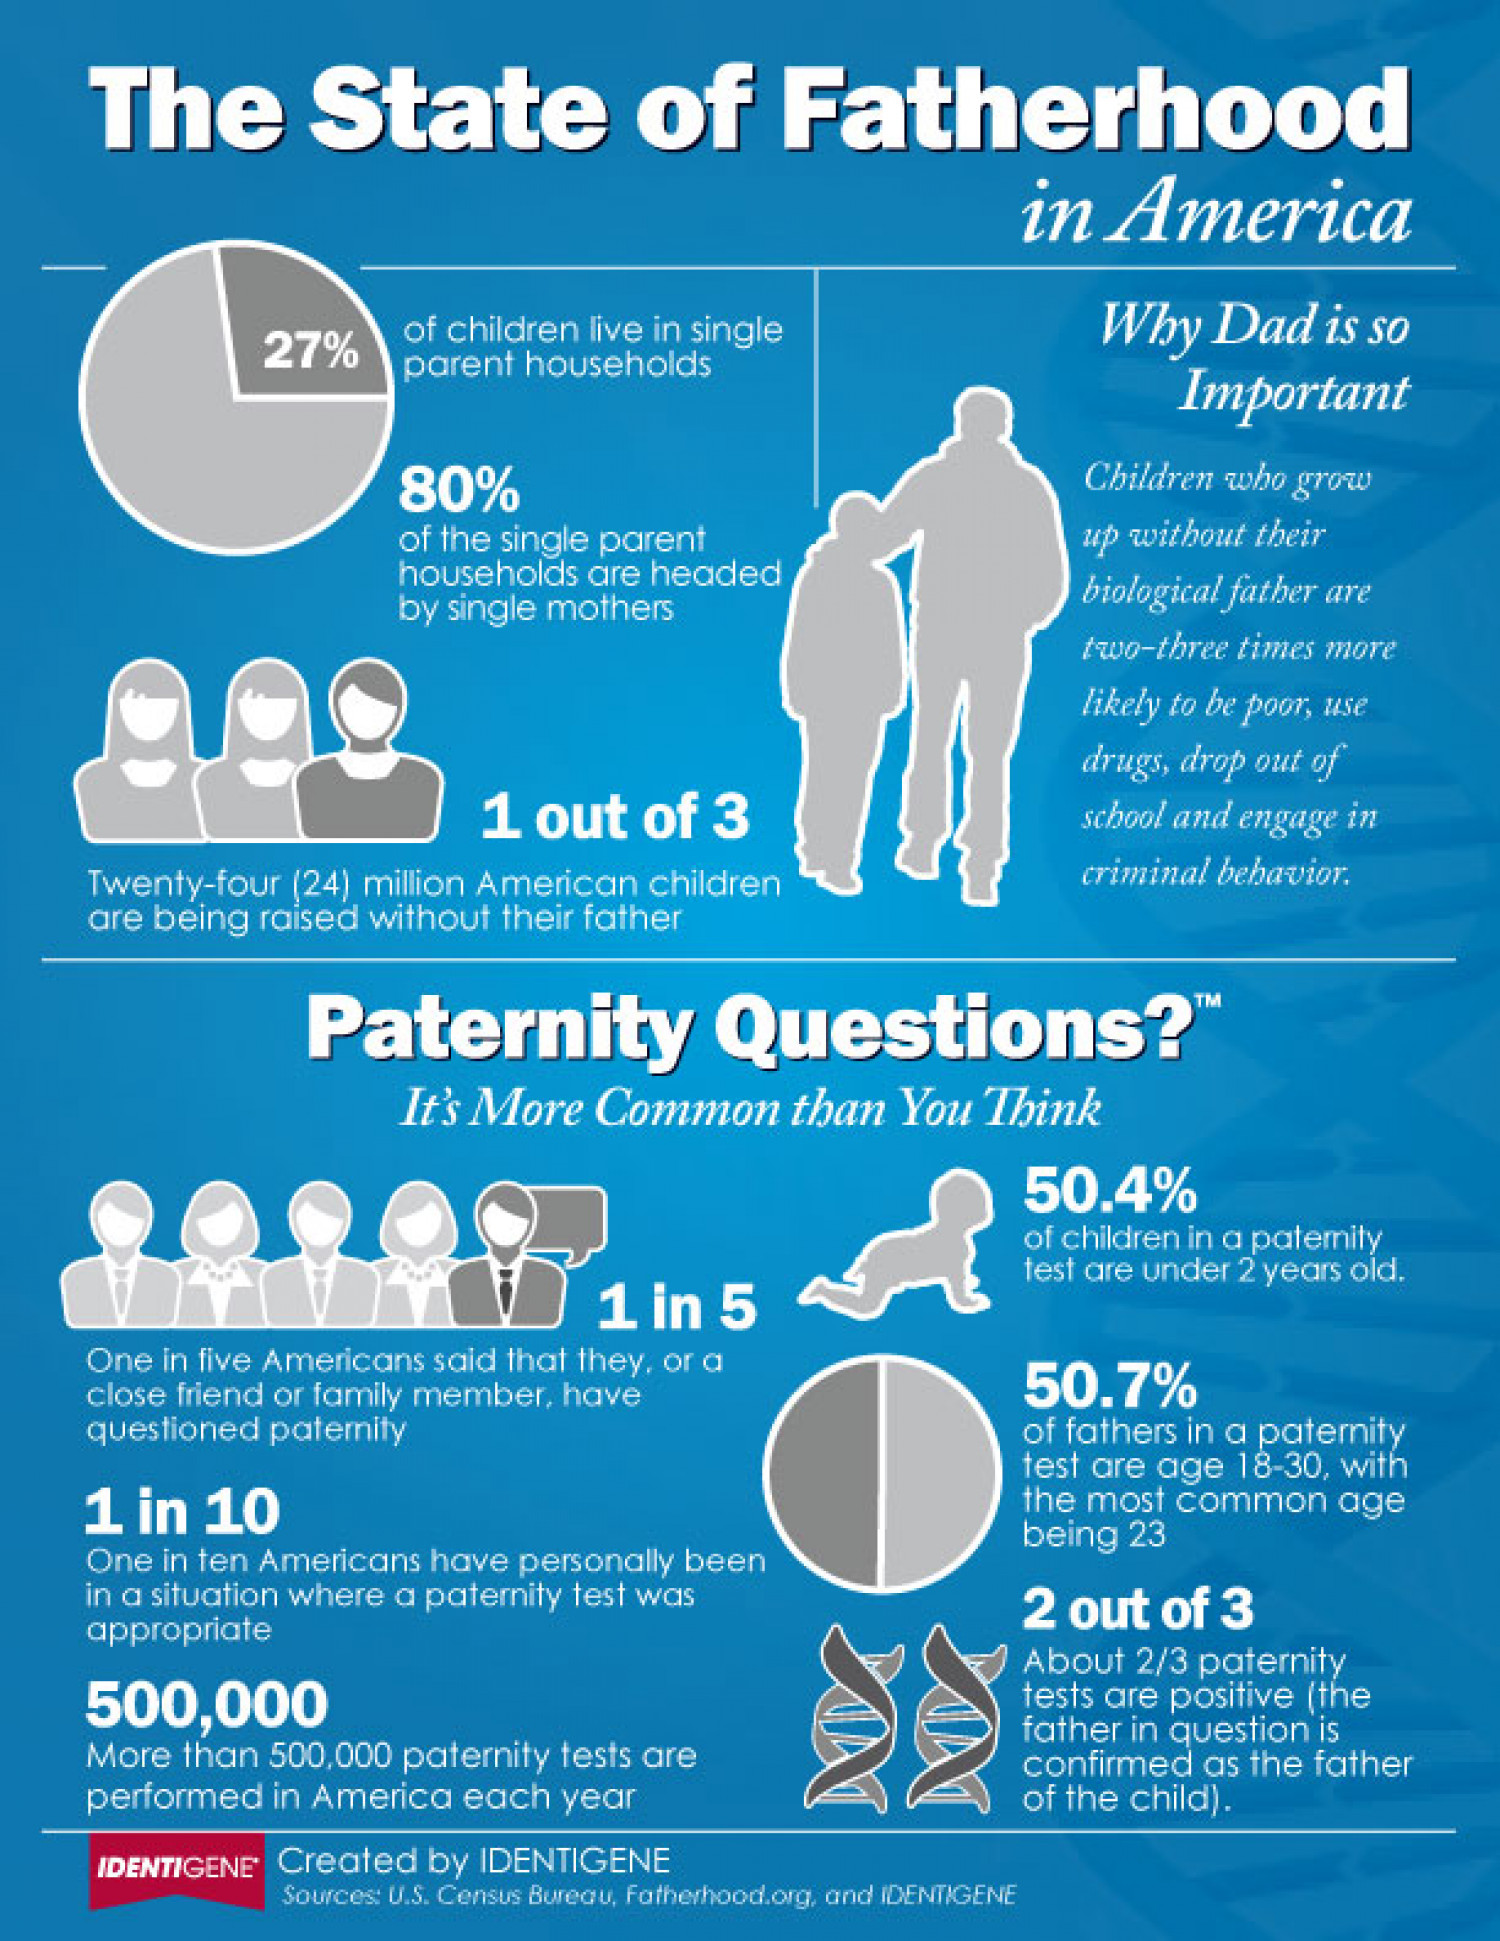 The State of Fatherhood Infographic